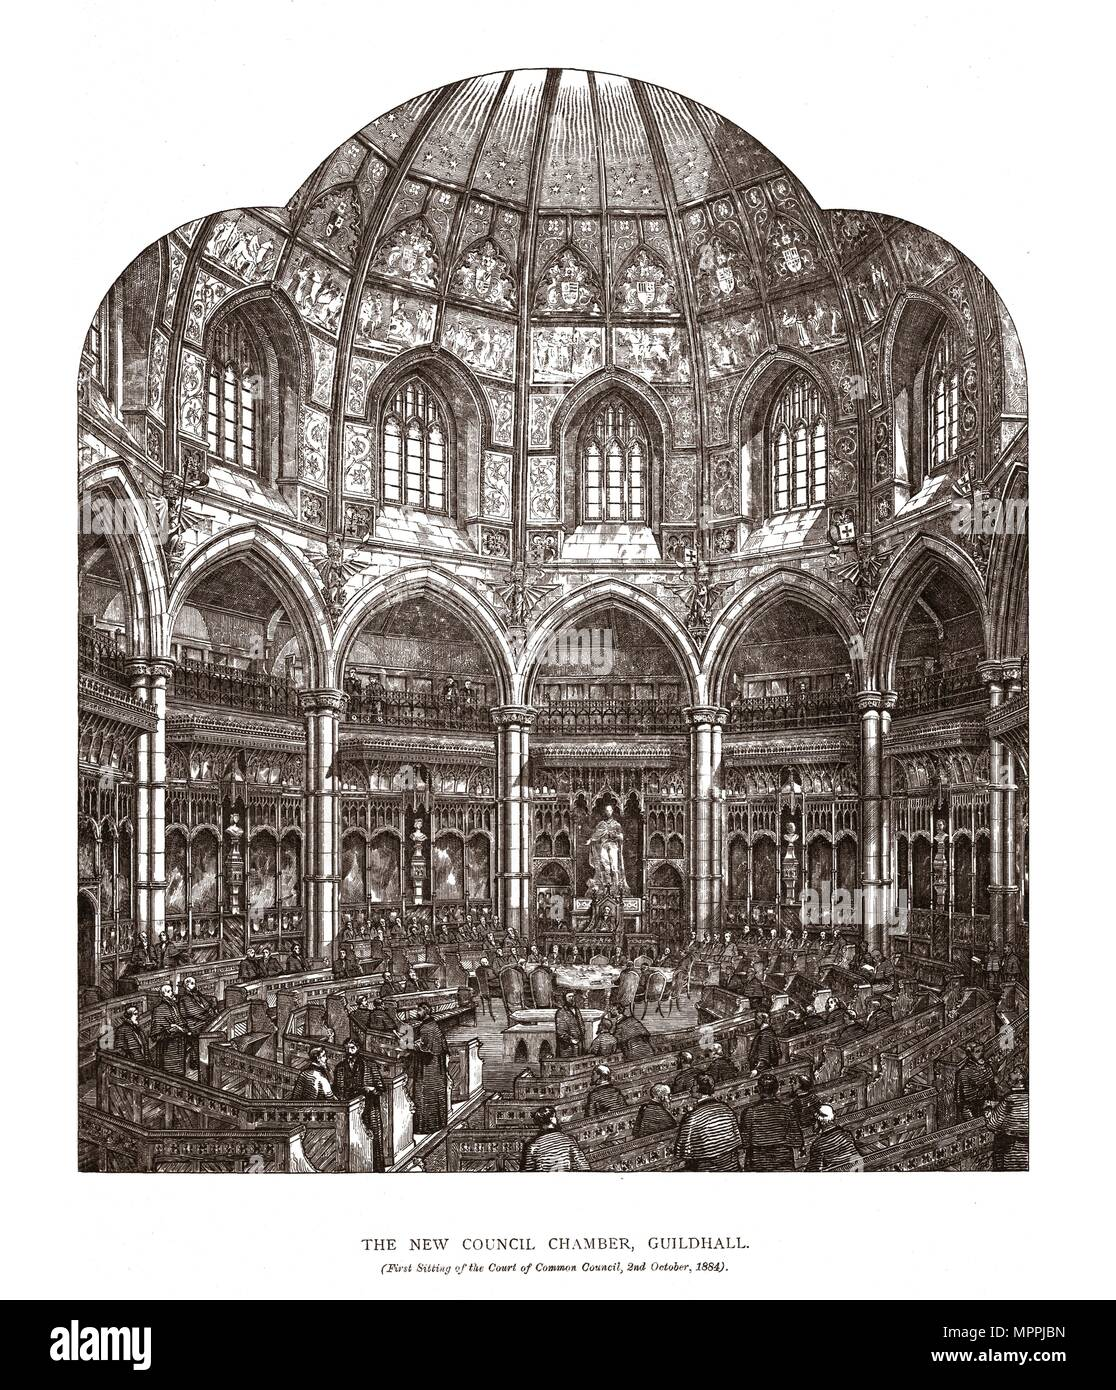 The New Council Chamber Guildhall, 1884, (1886). Artist: Horace Jones. - Stock Image